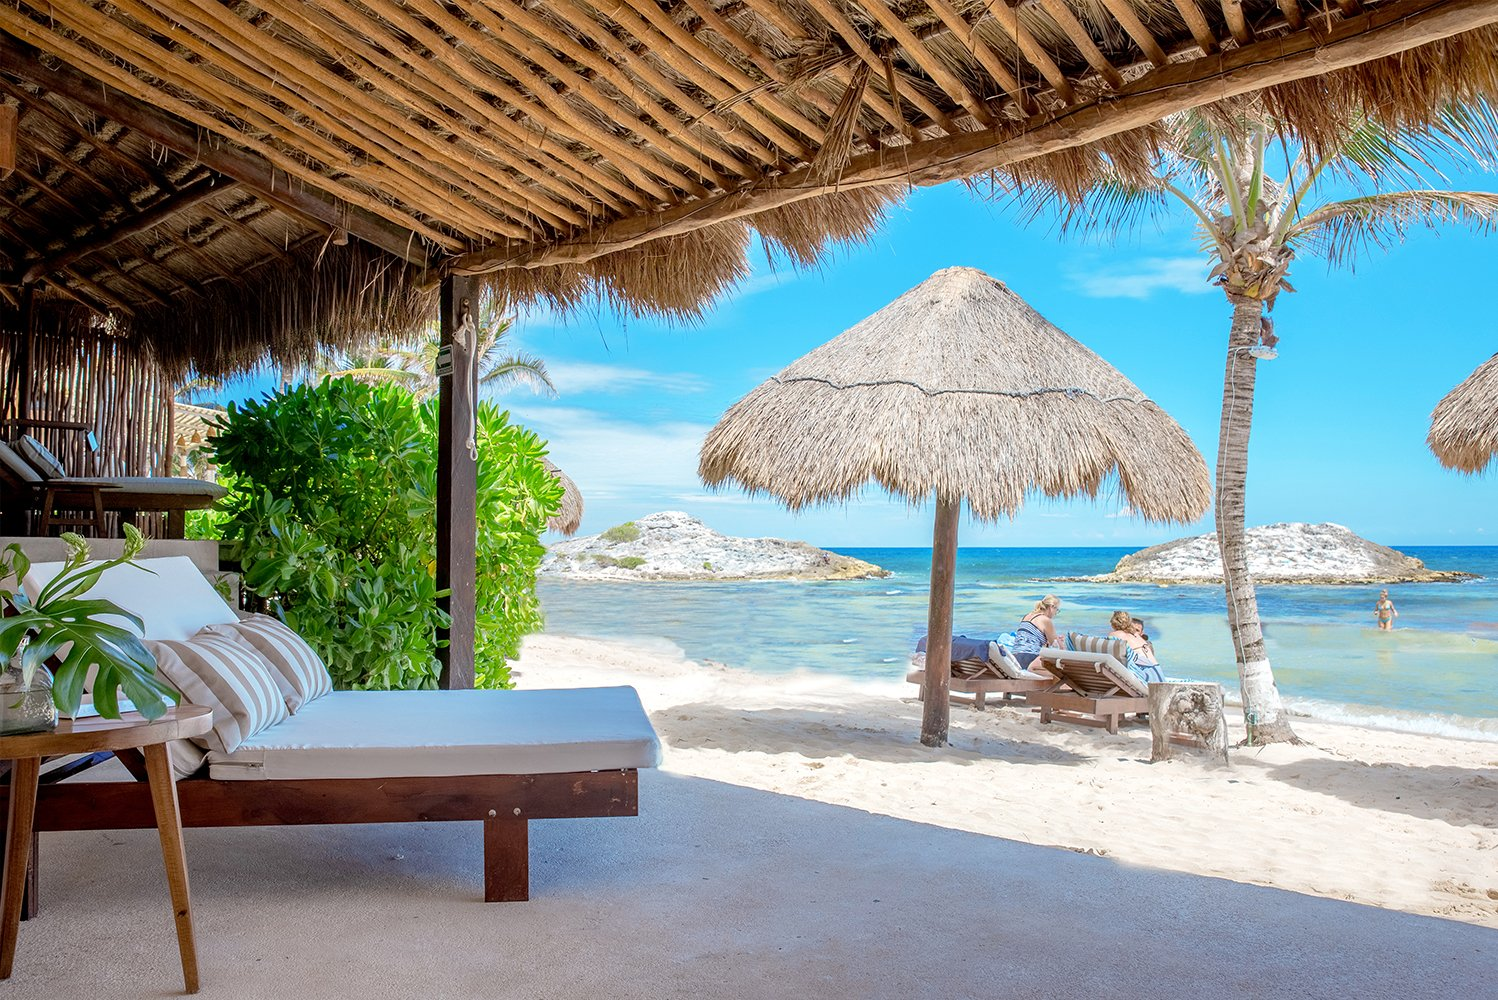 The new rooms are literally set on the sand, giving access and views of the Caribbean Sea.